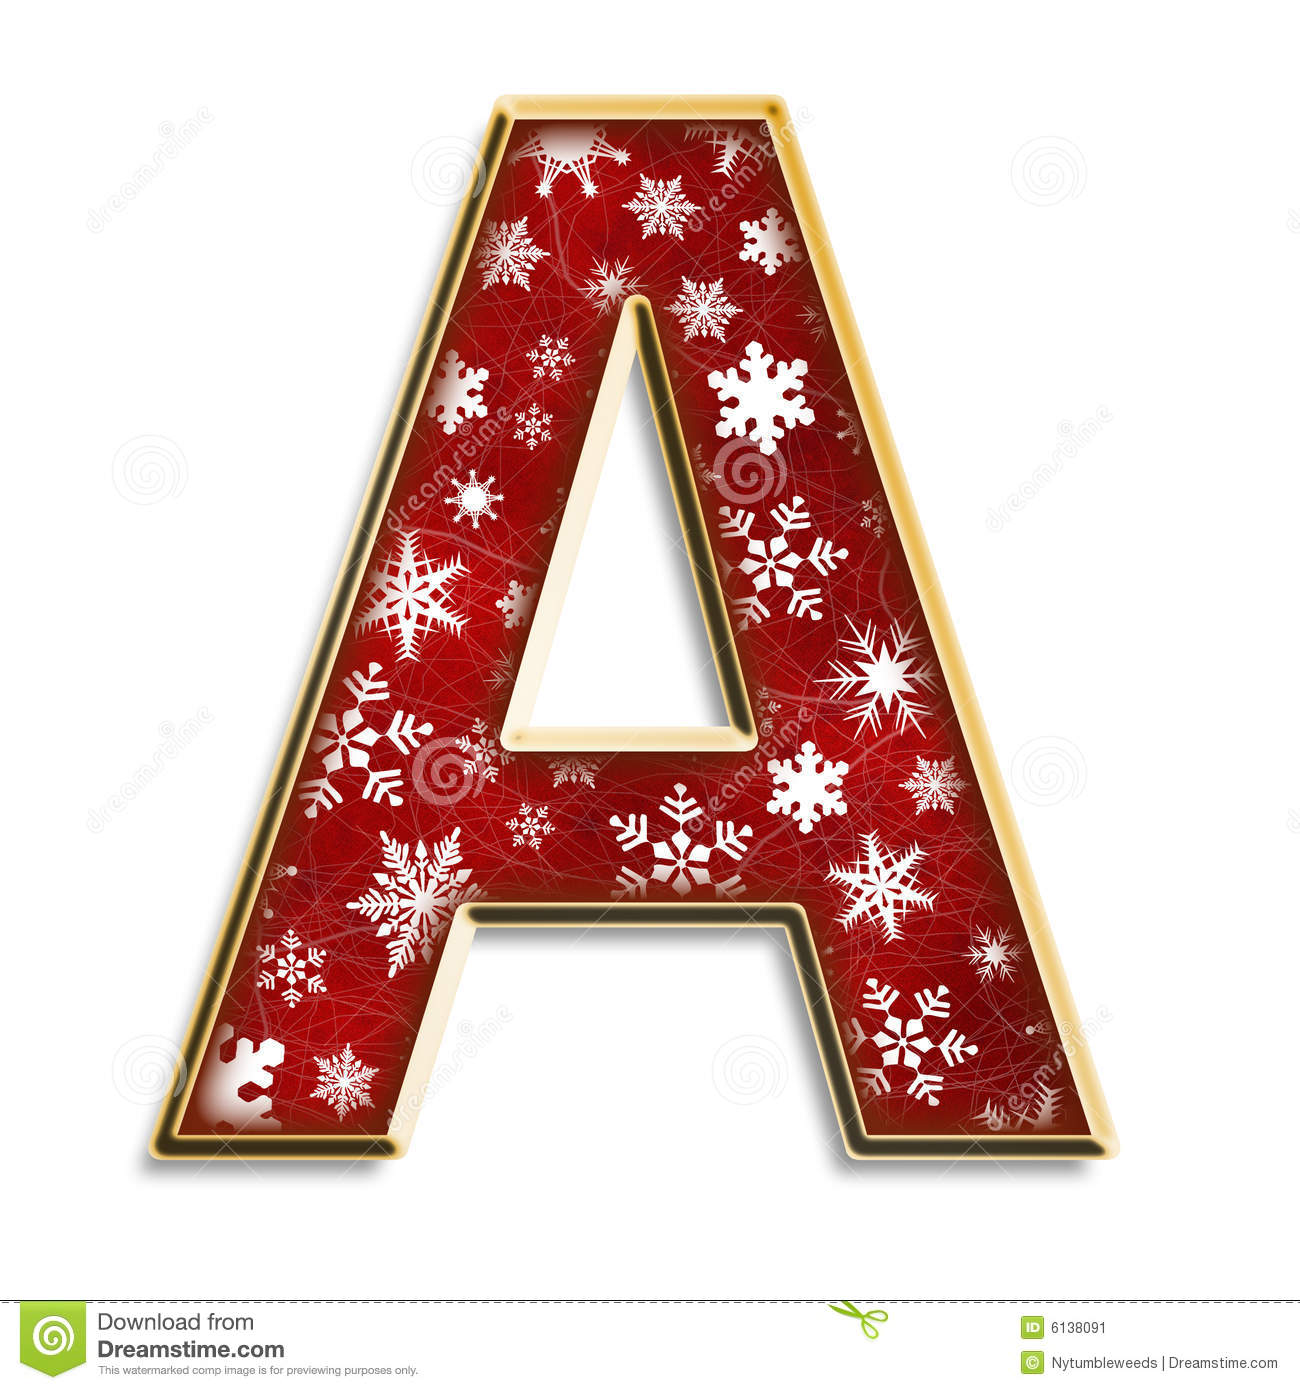 Christmas letter A in red stock illustration. Illustration of